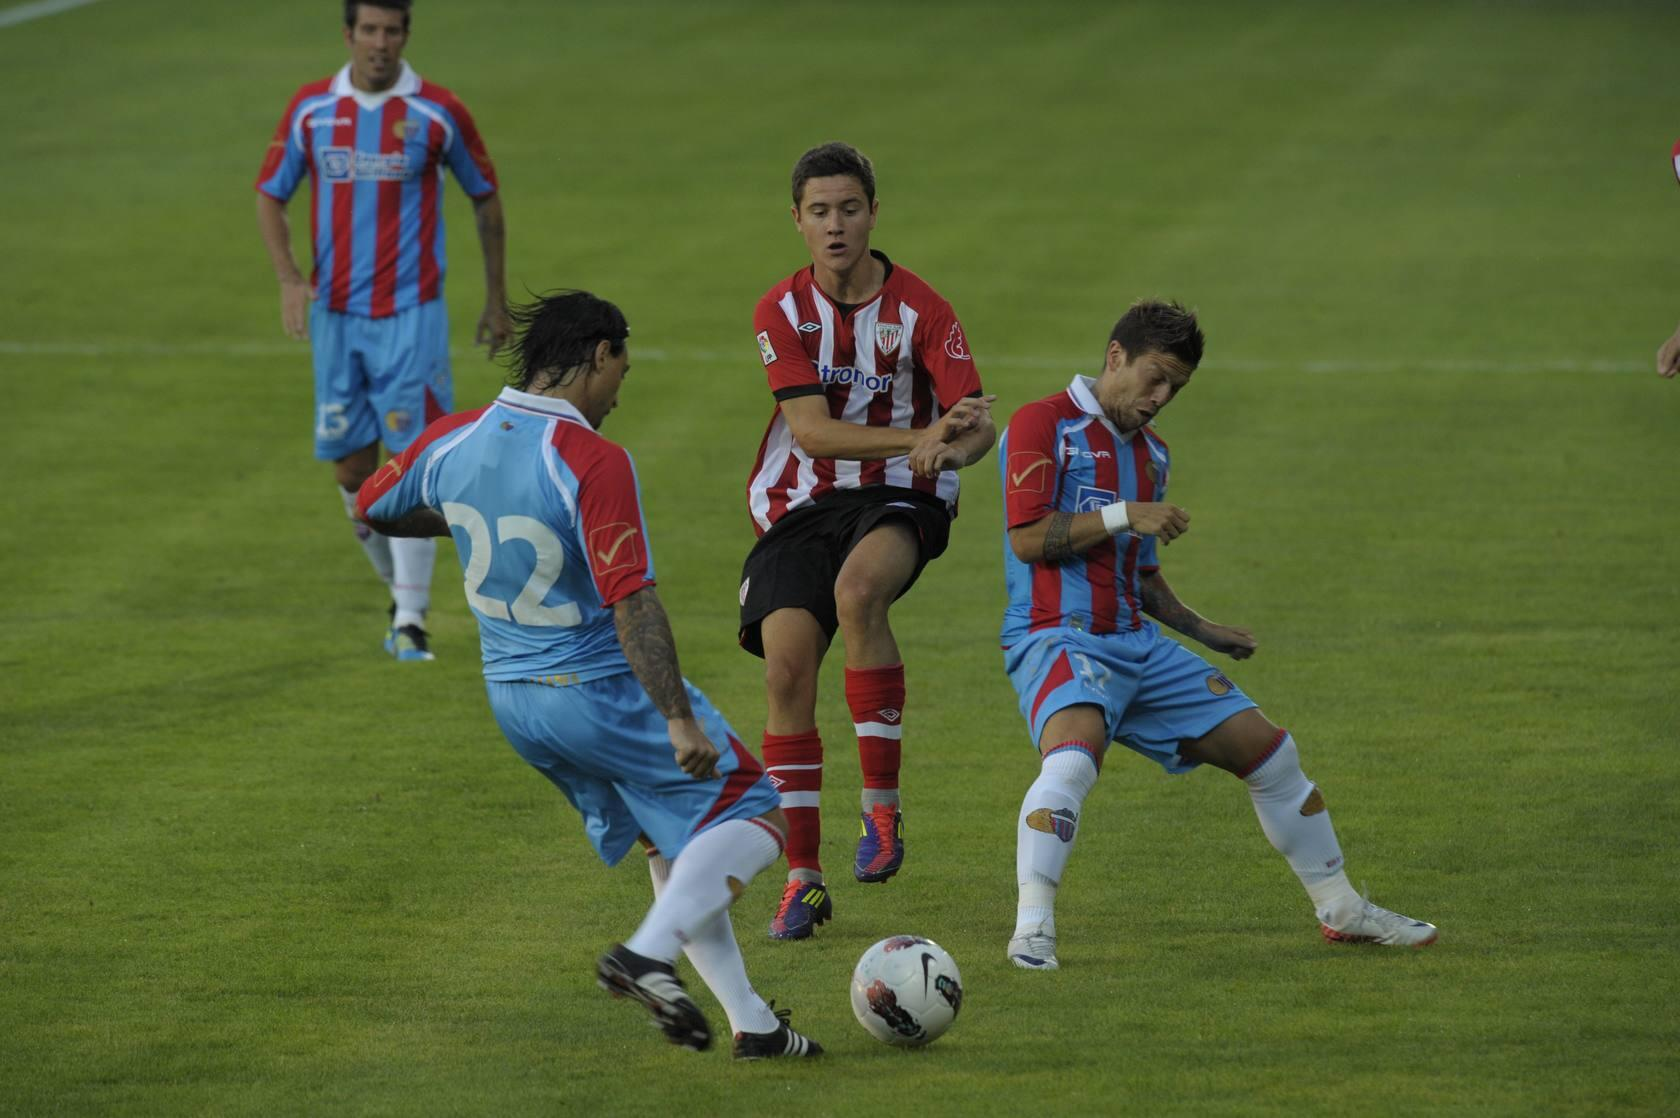 El Athletic Club gana 3-1 al Catania